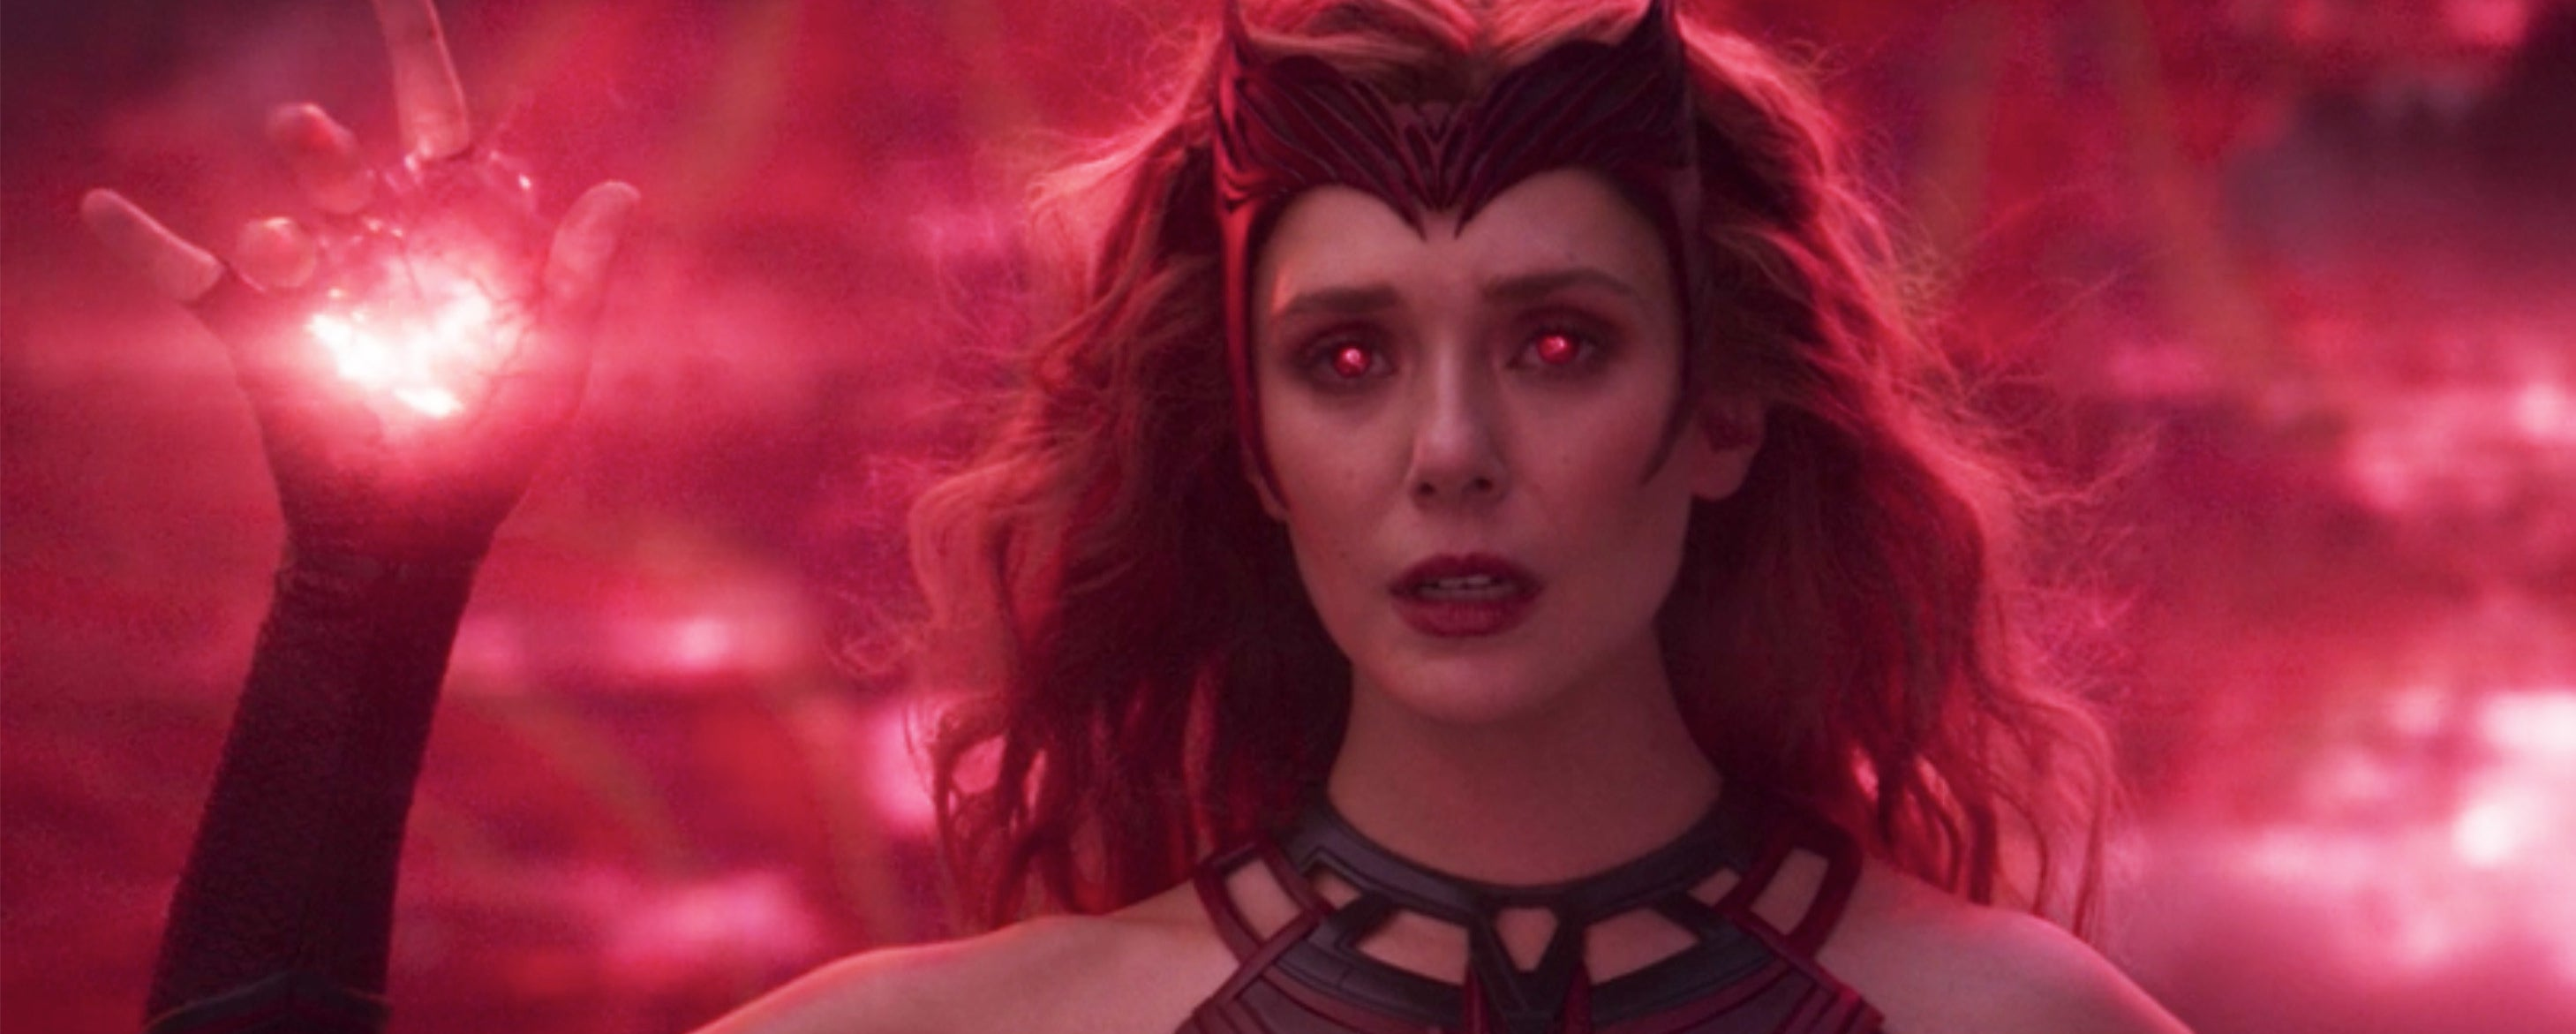 Wanda in her Scarlet Witch outfit